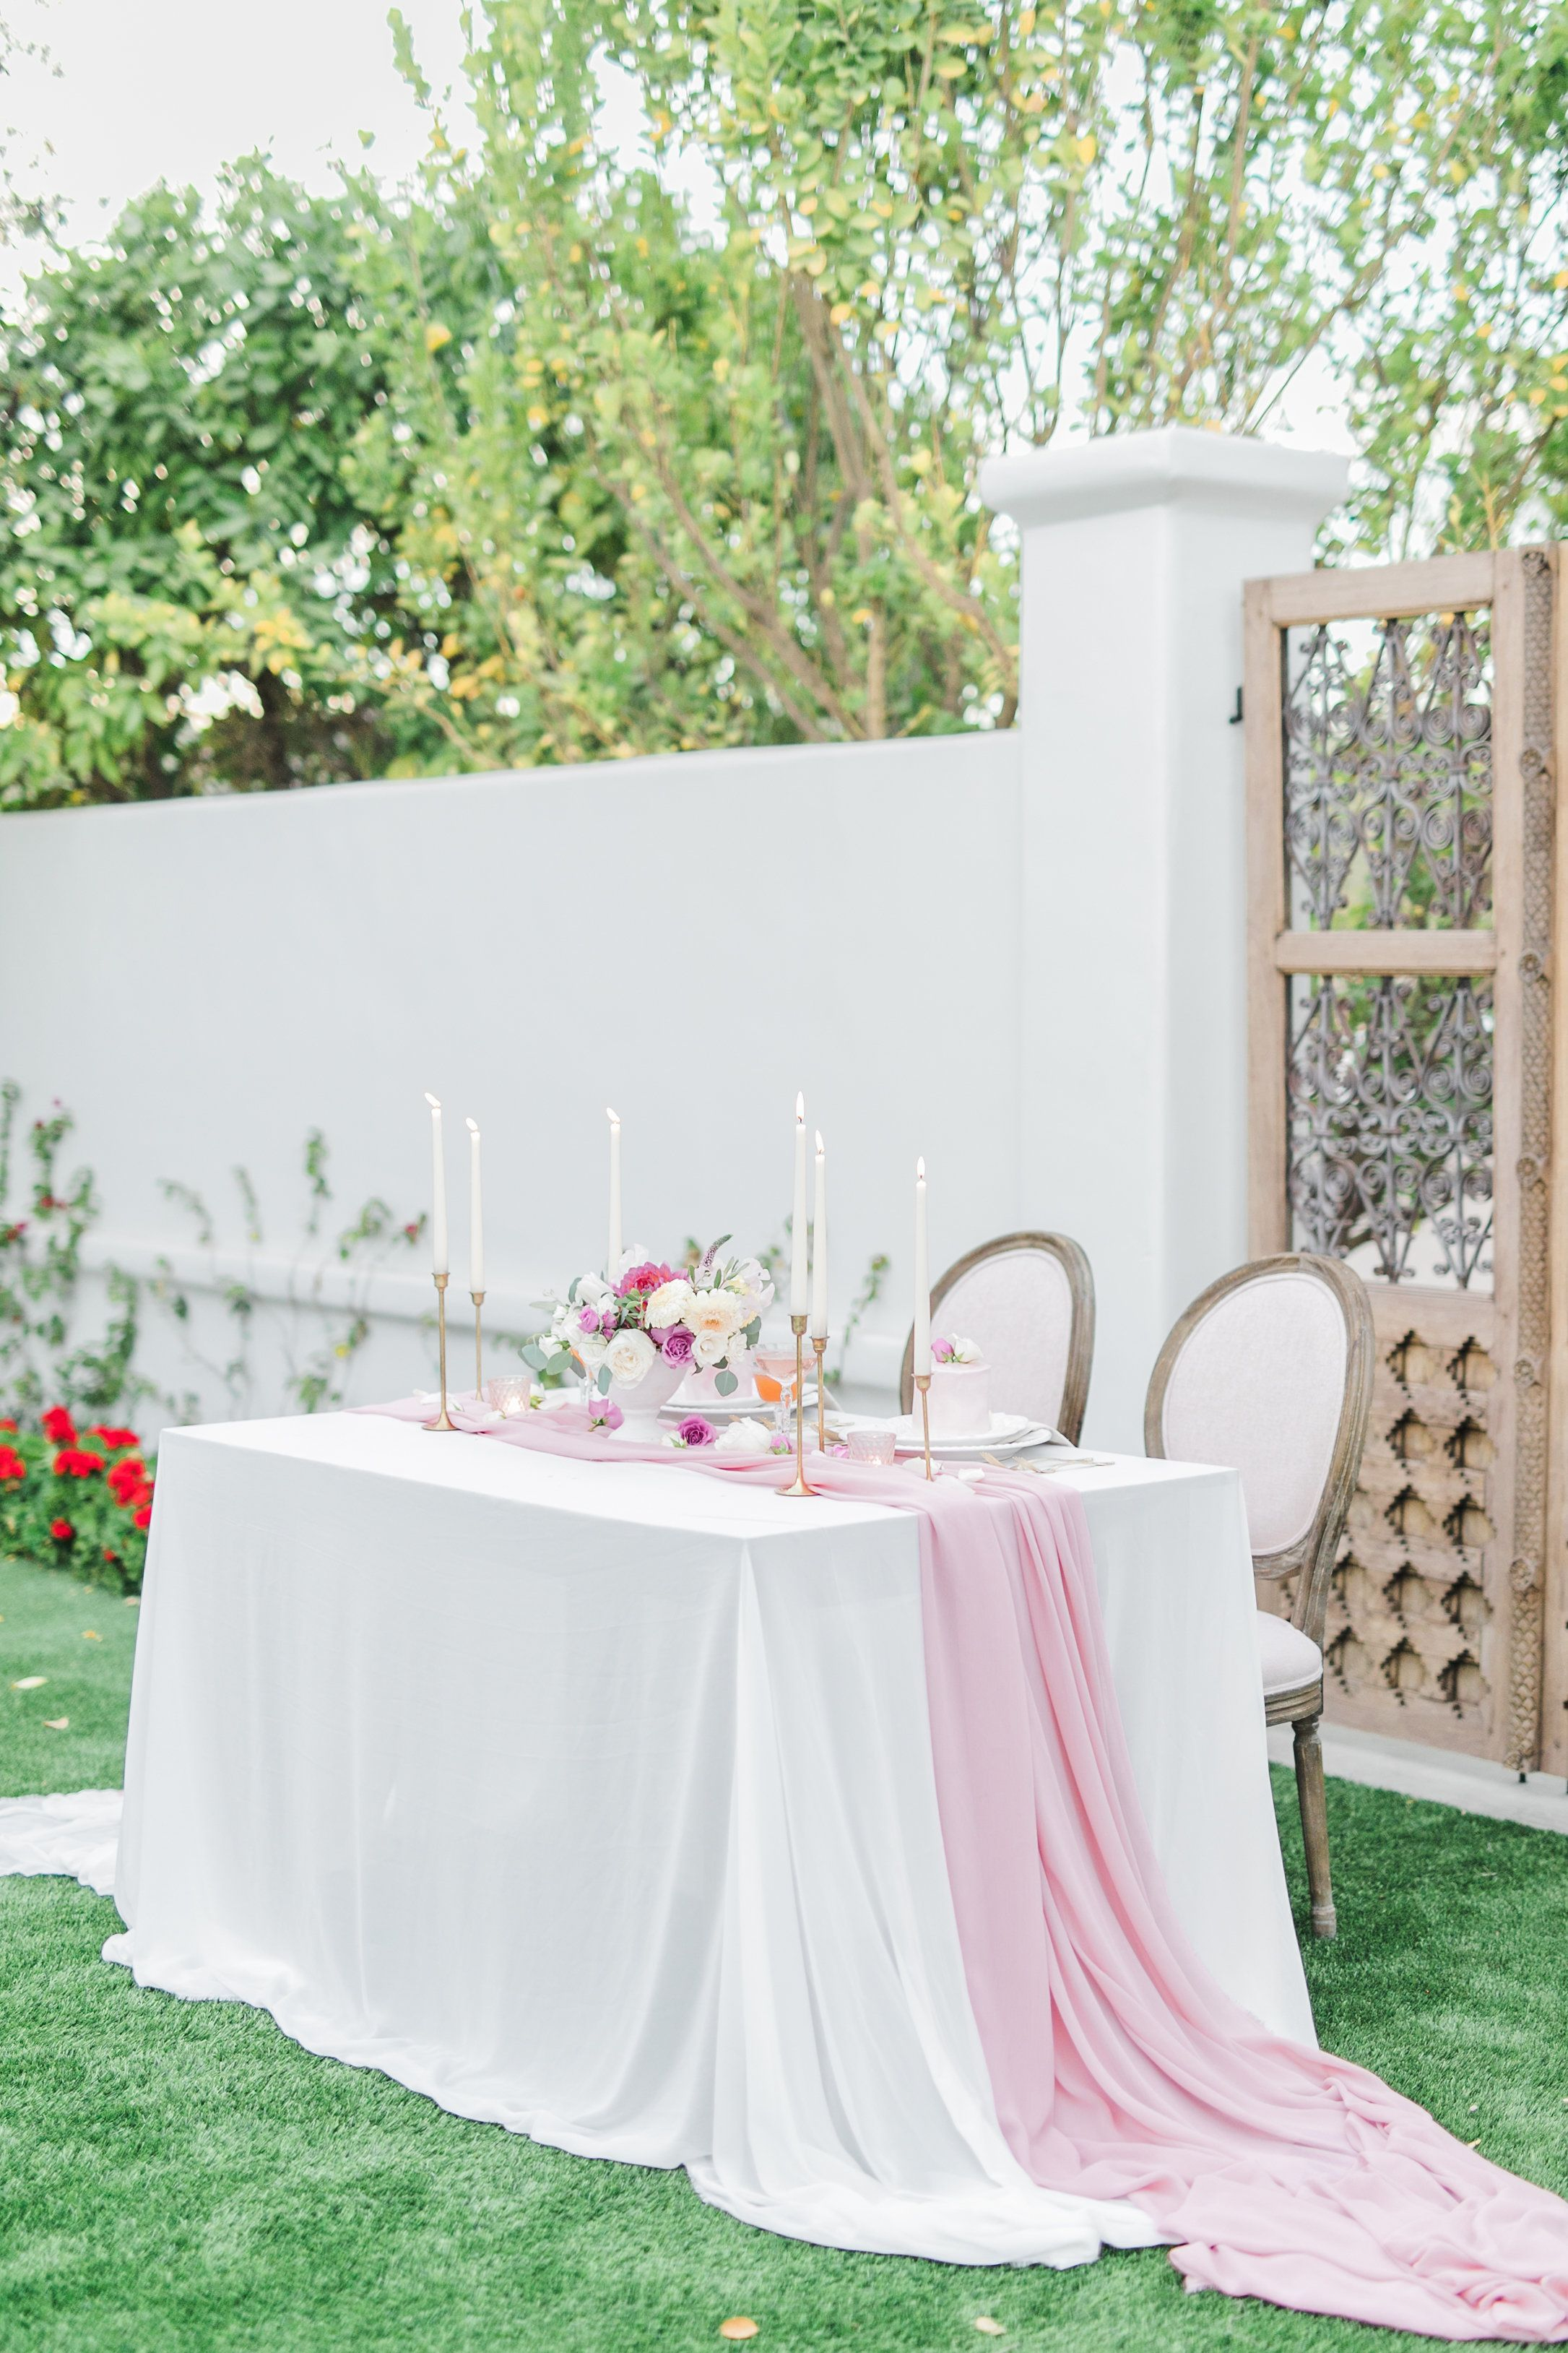 El Chorro Outdoor Wedding Inspiration We Love This Sweetheart Table